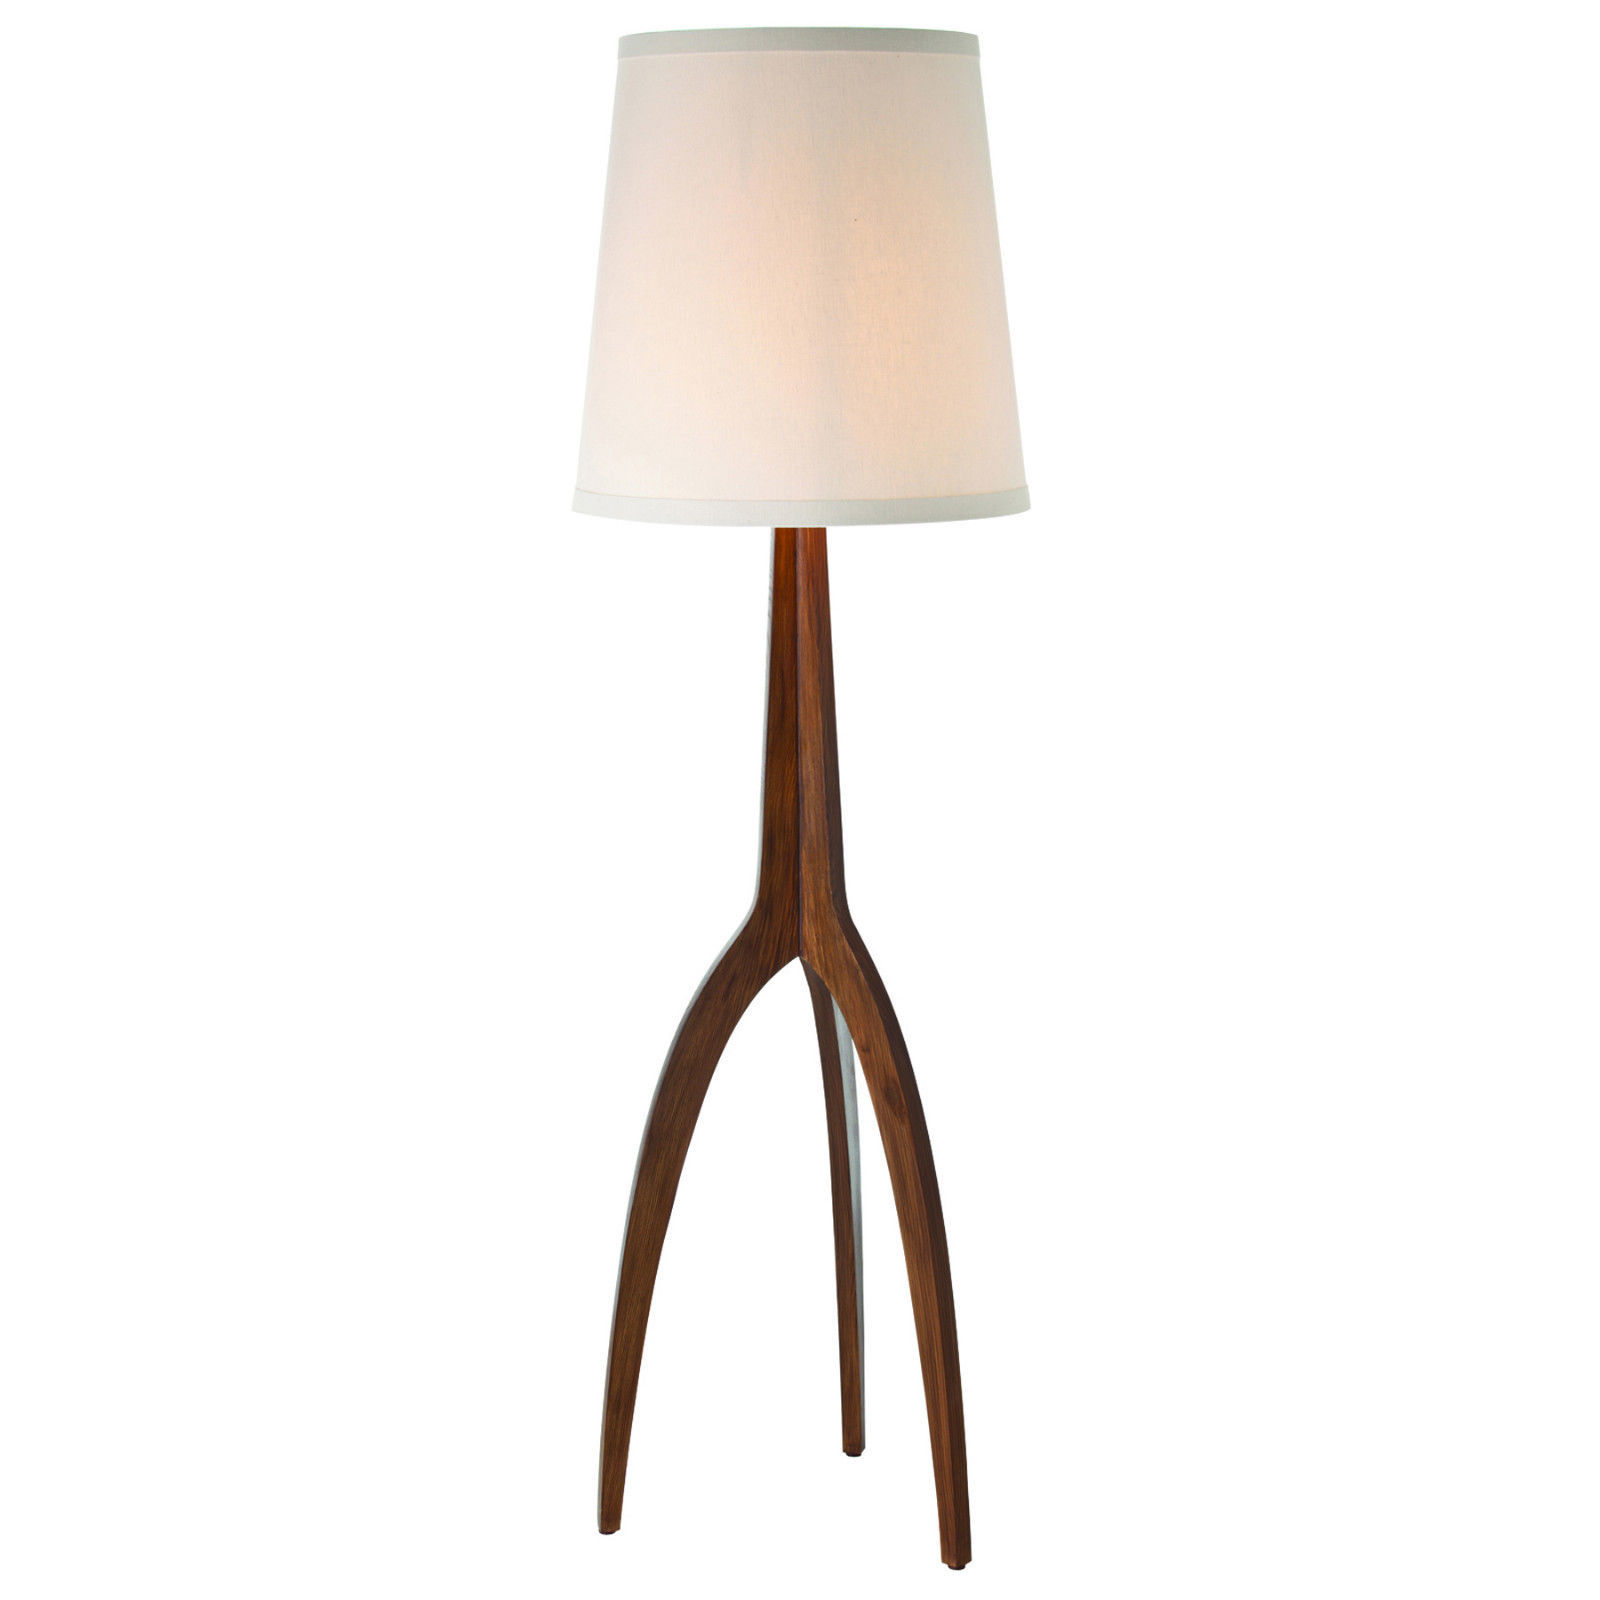 Tripod walnut finished wood mid century modern arteriors Wood floor lamp